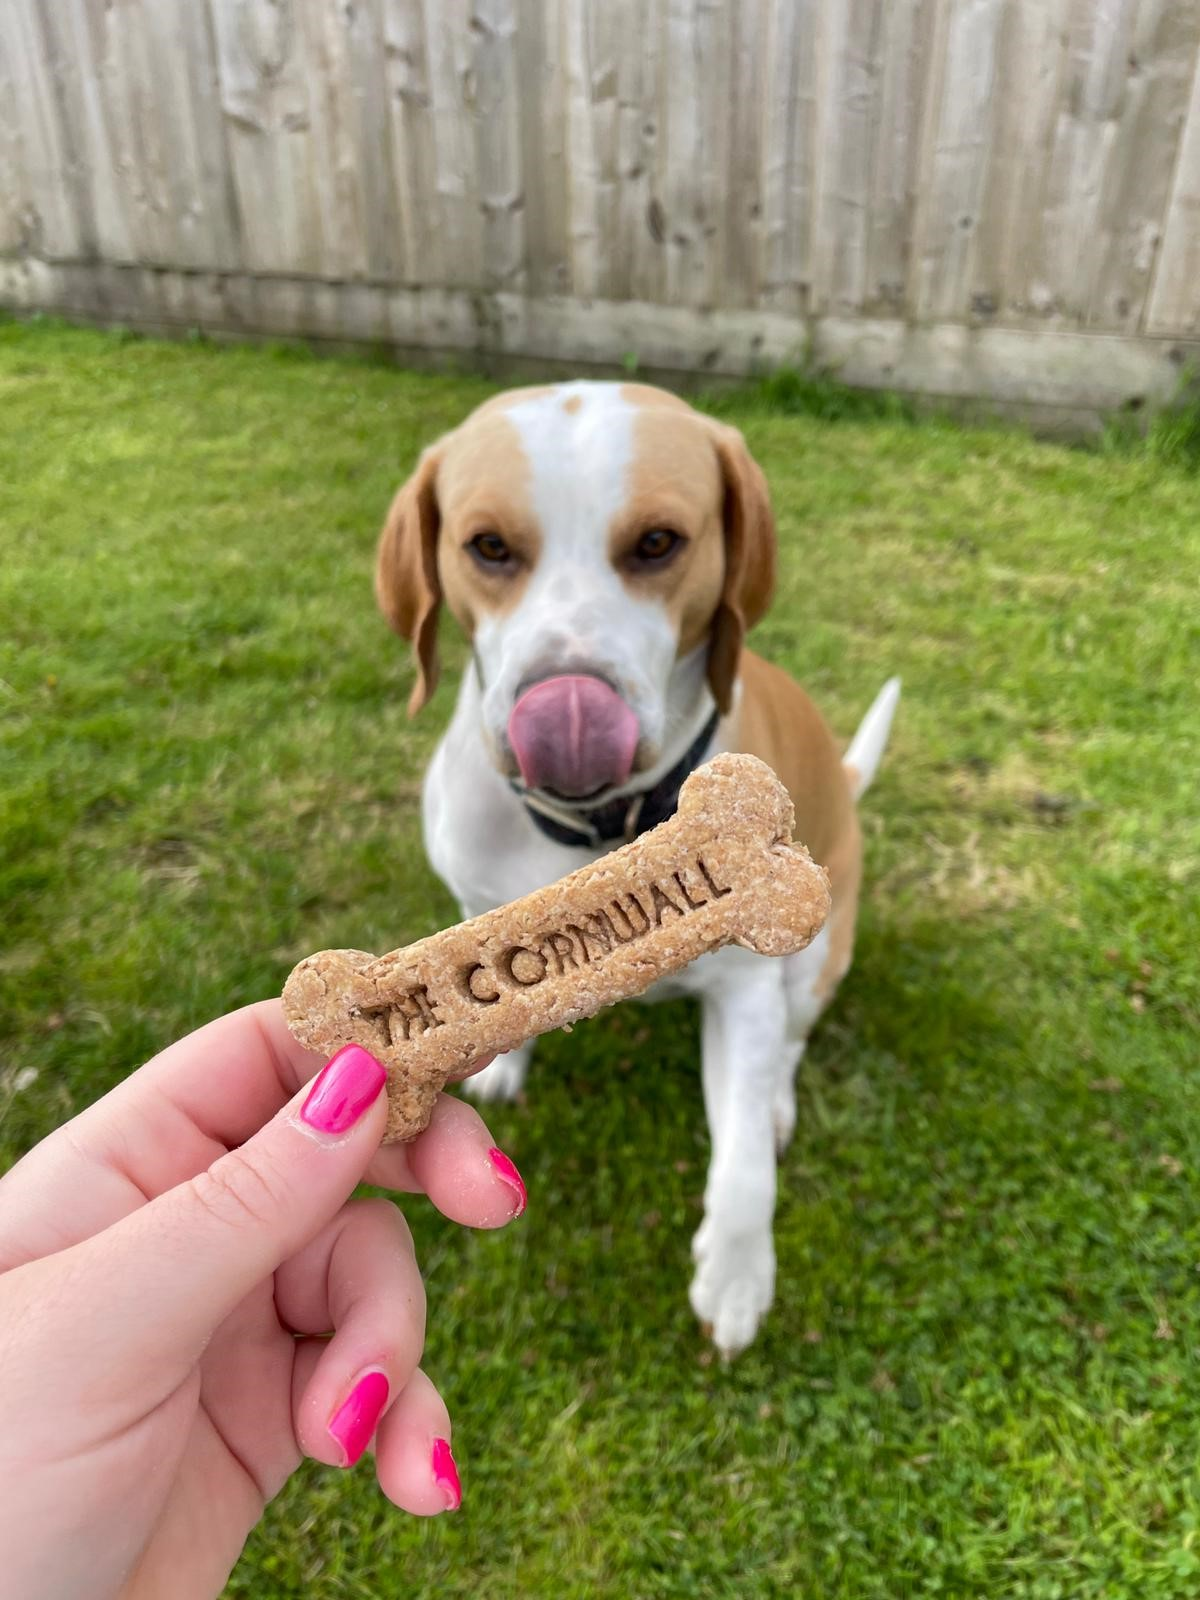 Tez tasting The Cornwall's dog biscuits